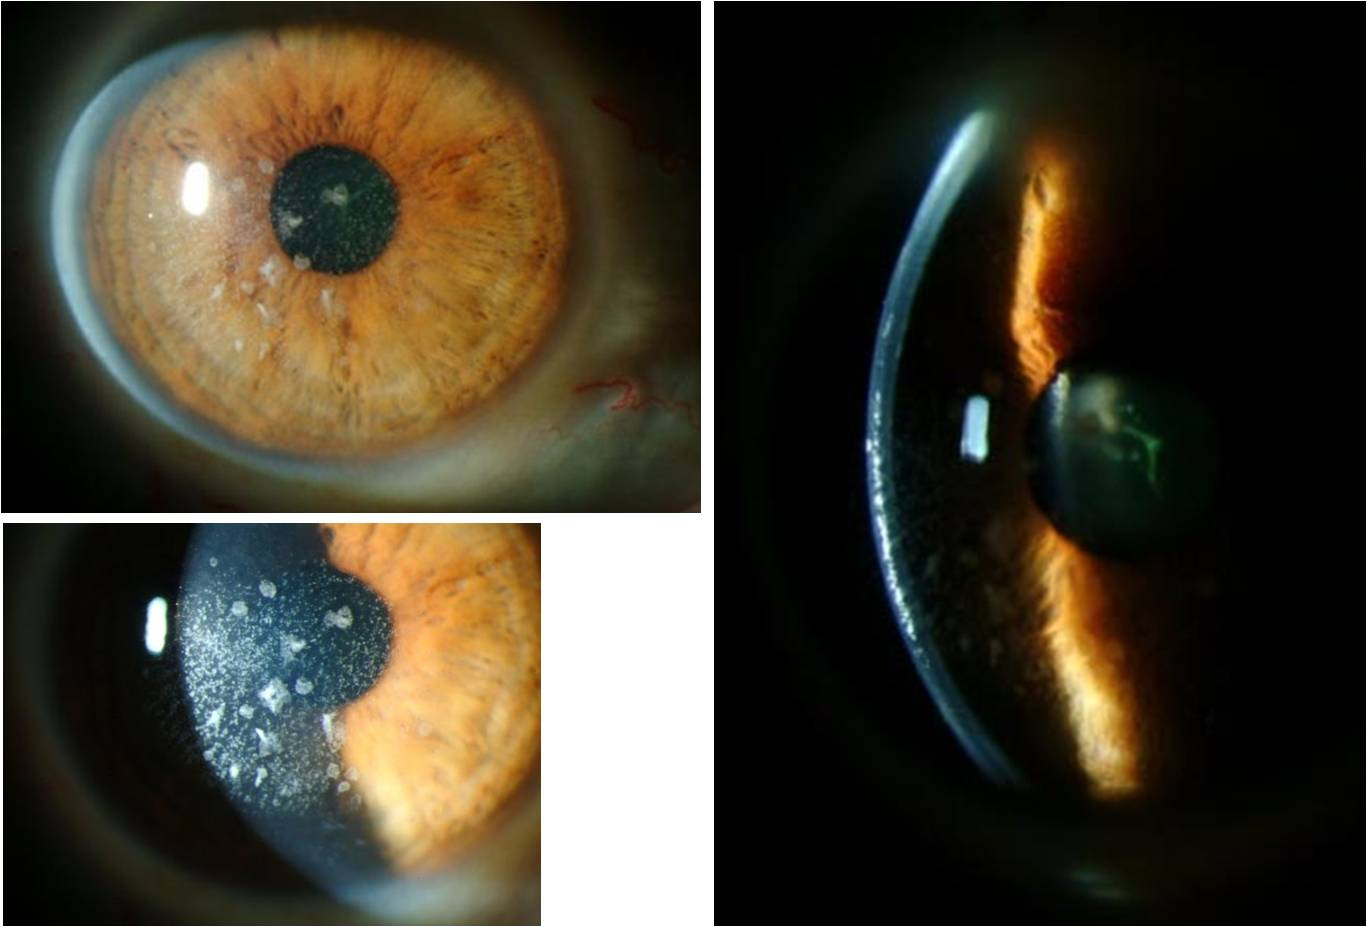 Slit Lamp Photos Of The Right Eye, Following Superficial Keratectomy And  Phototherapeutic Keratectomy (PTK